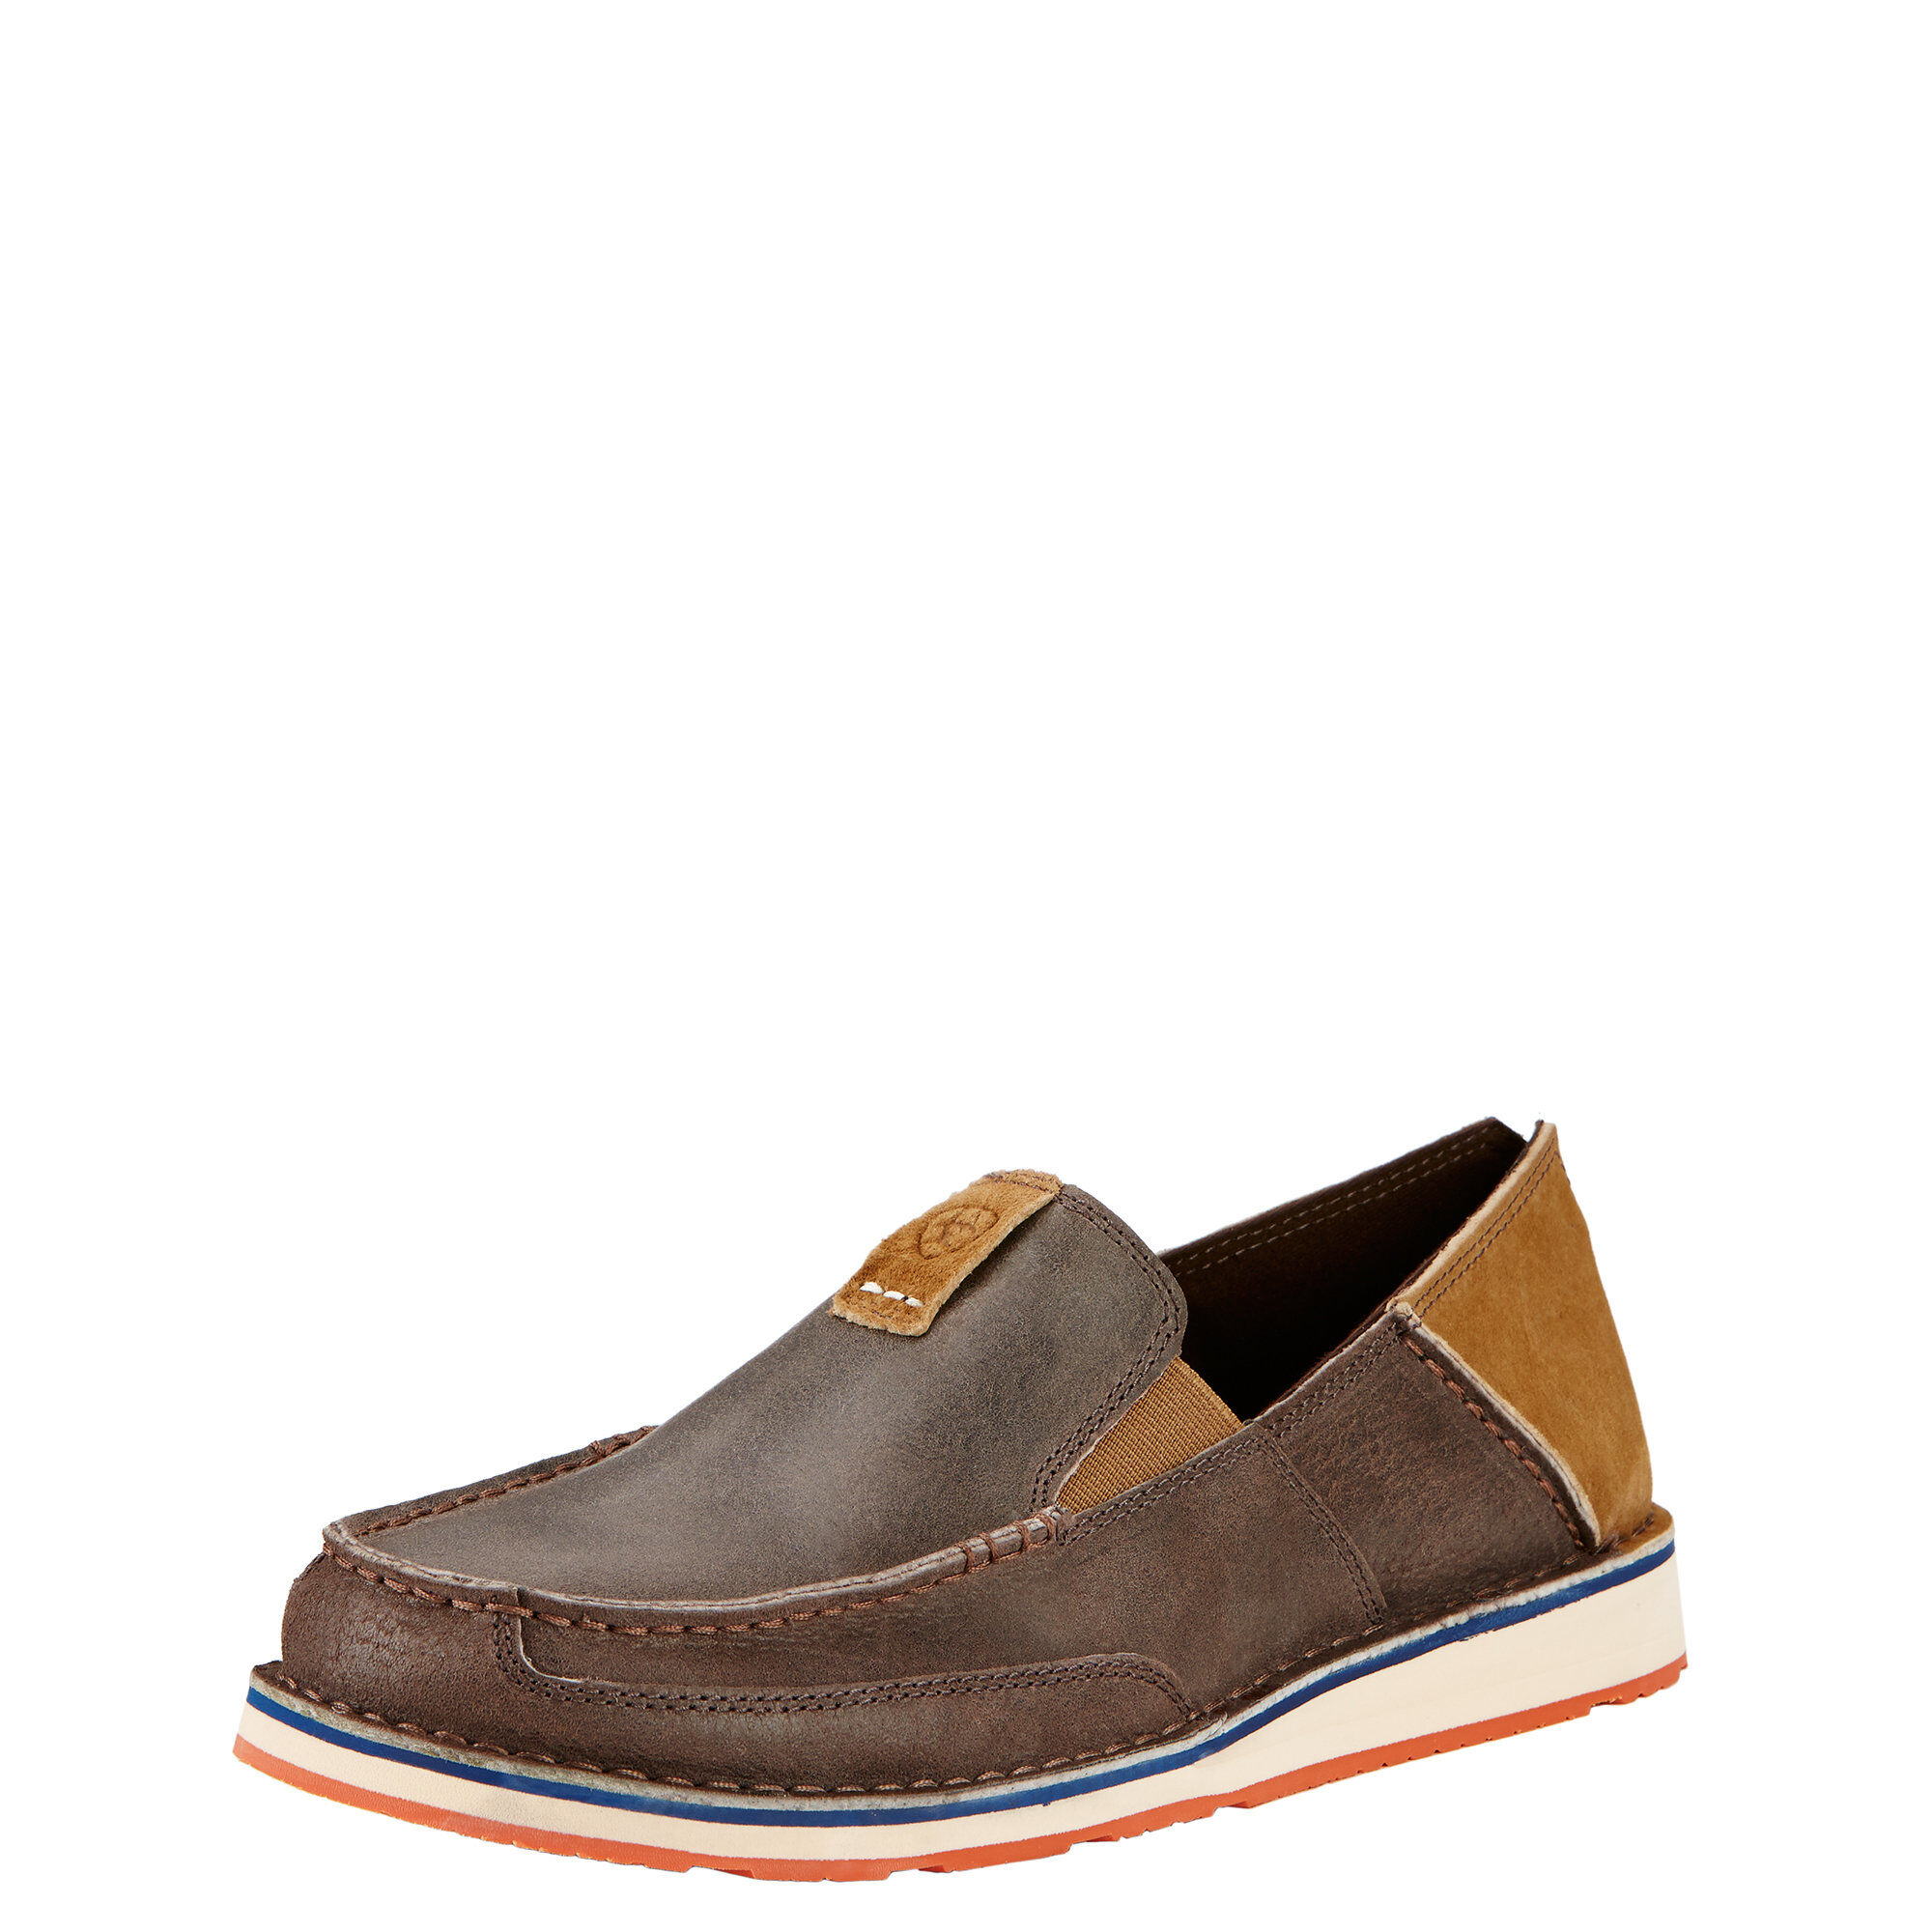 Ariat English Cruiser Loafer(Women's) -Chocolate/Seaport Shoes Suede Best Store To Get PLjSZBvk